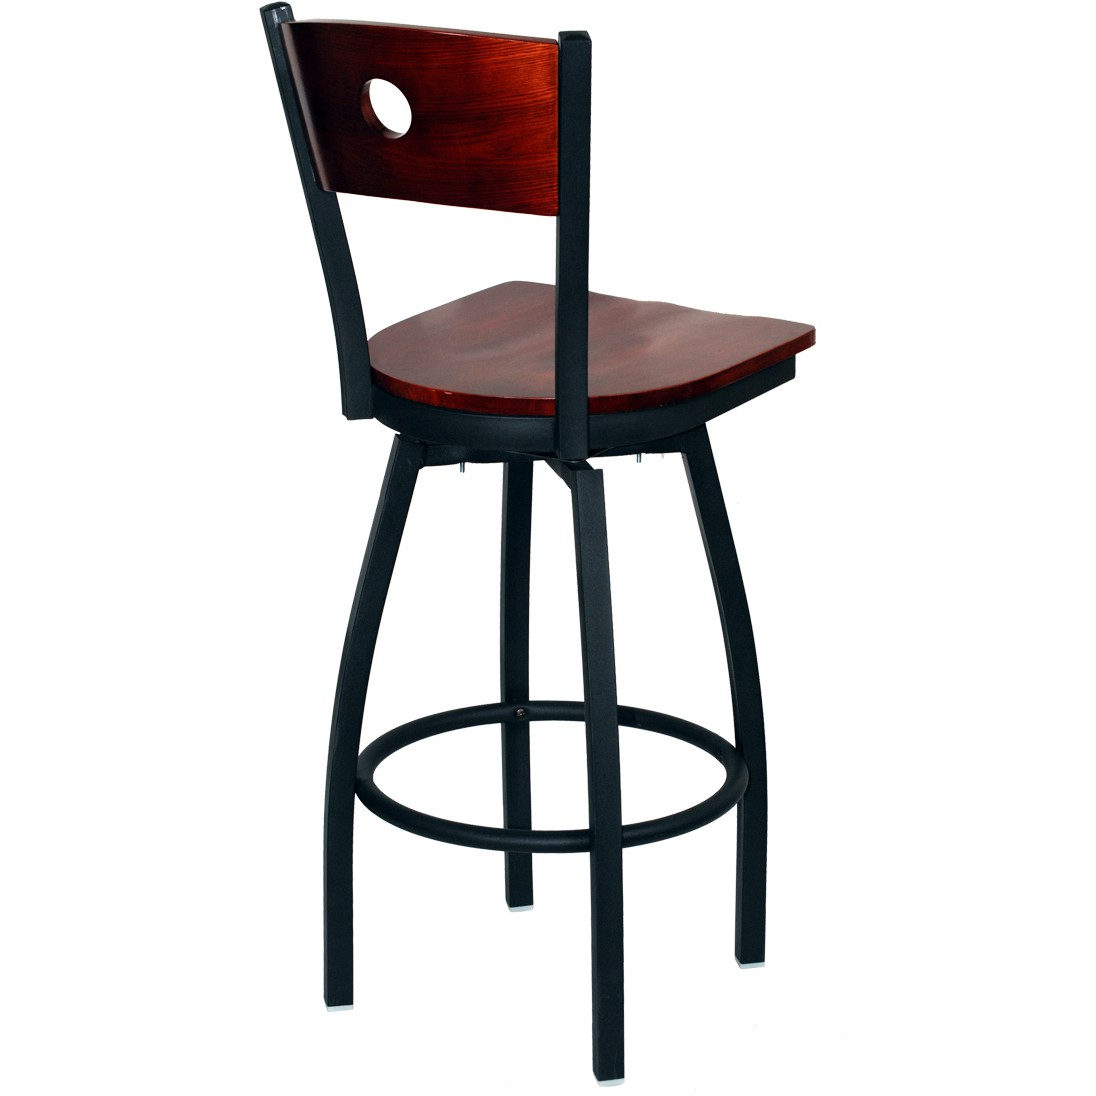 Bars And Bar Stools: Interchangeable Back Metal Swivel Bar Stool With A Circled